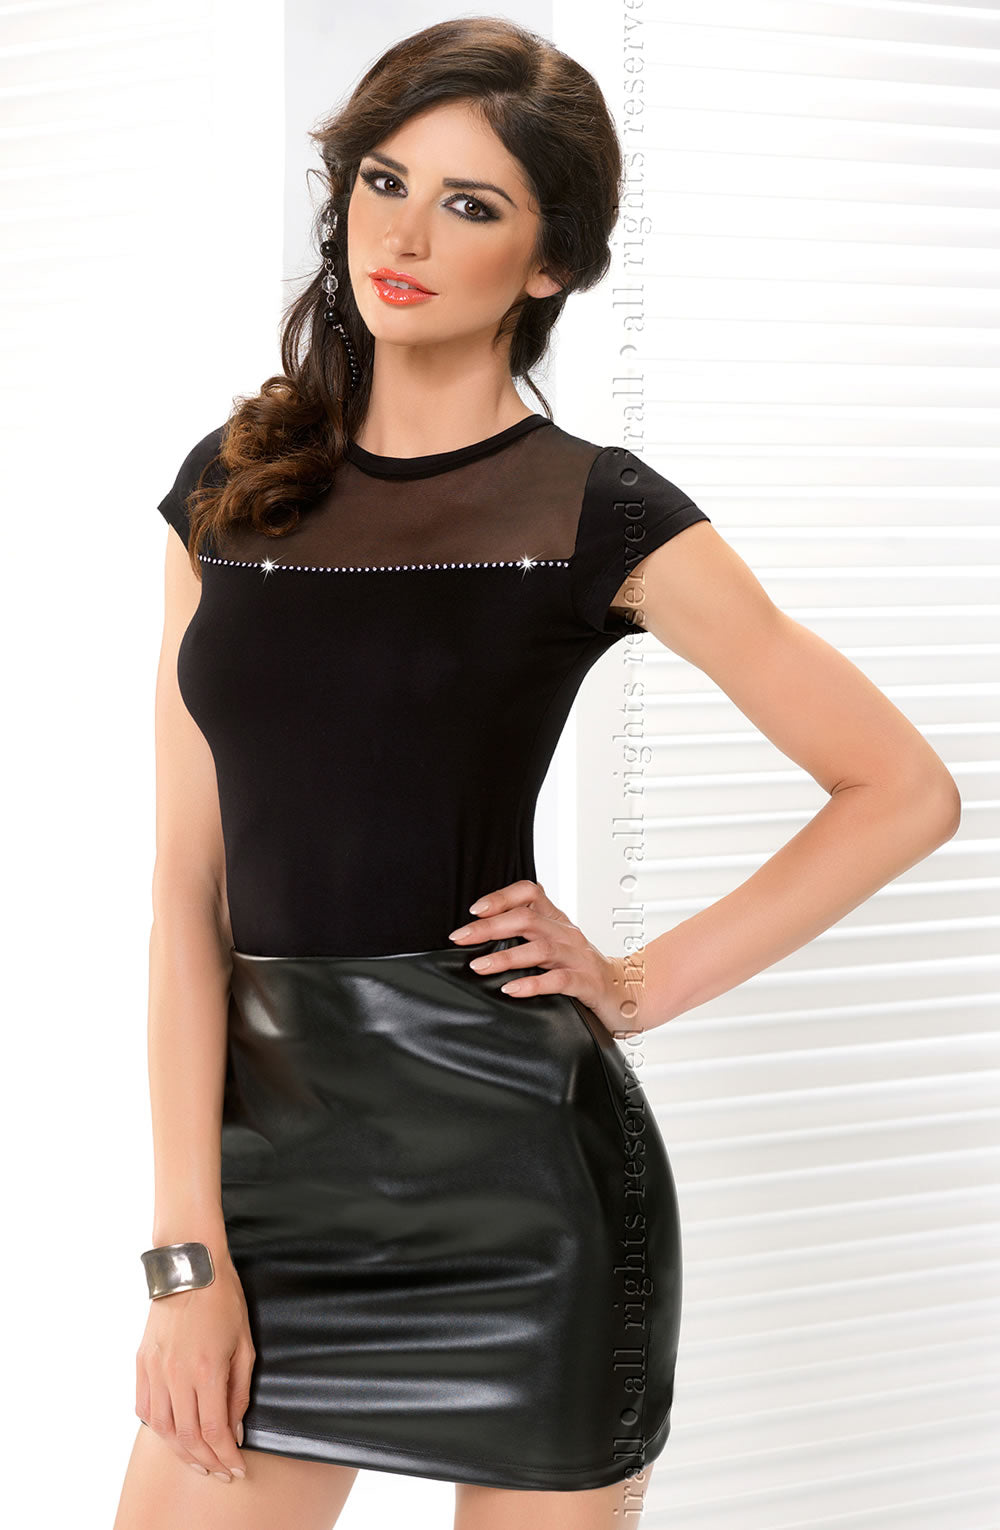 Irall Erotic Irall Enrica Mini Skirt Black